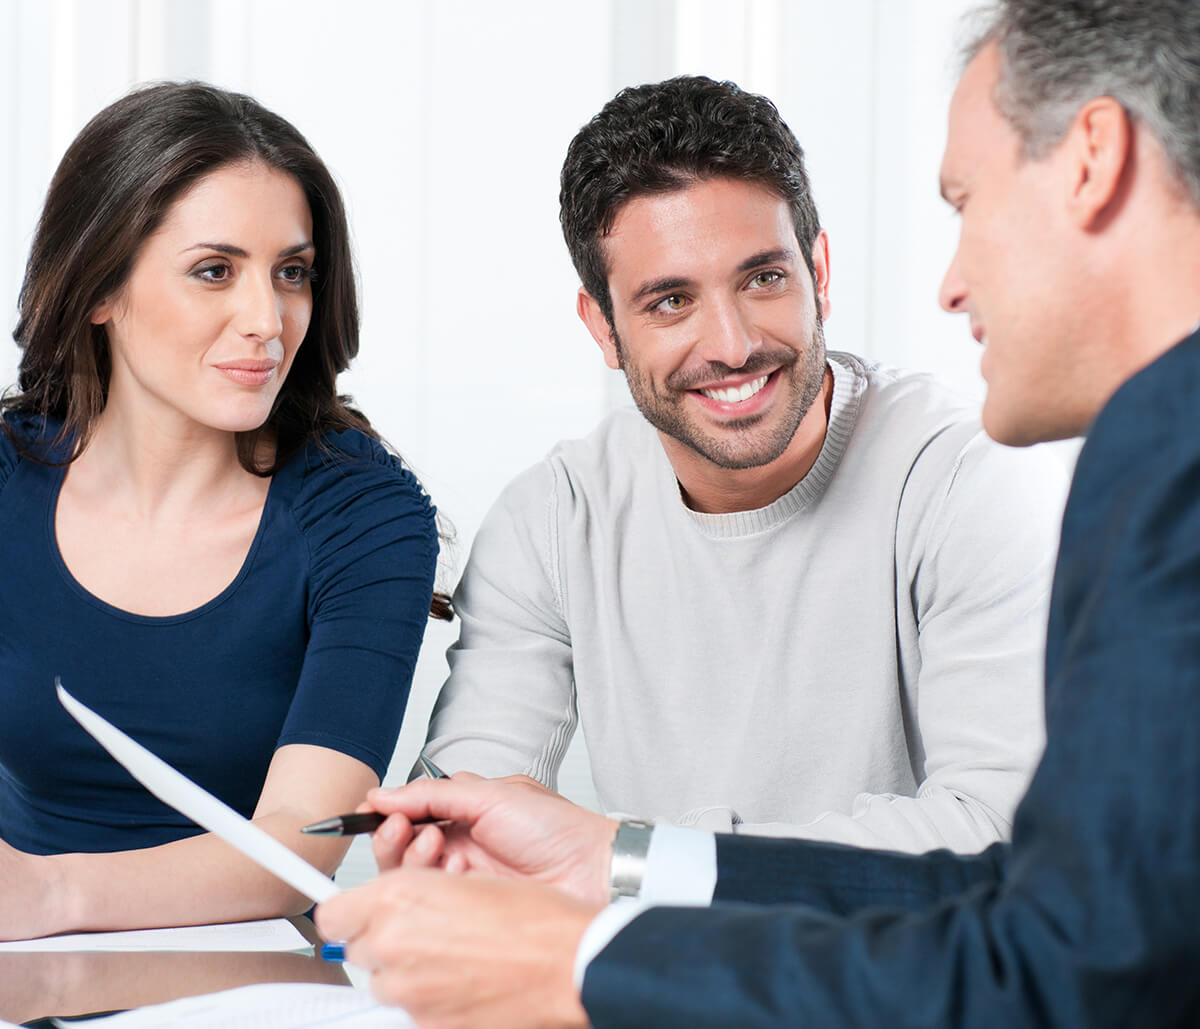 Those Looking to Find a Small Business Lawyer in Mississauga Area